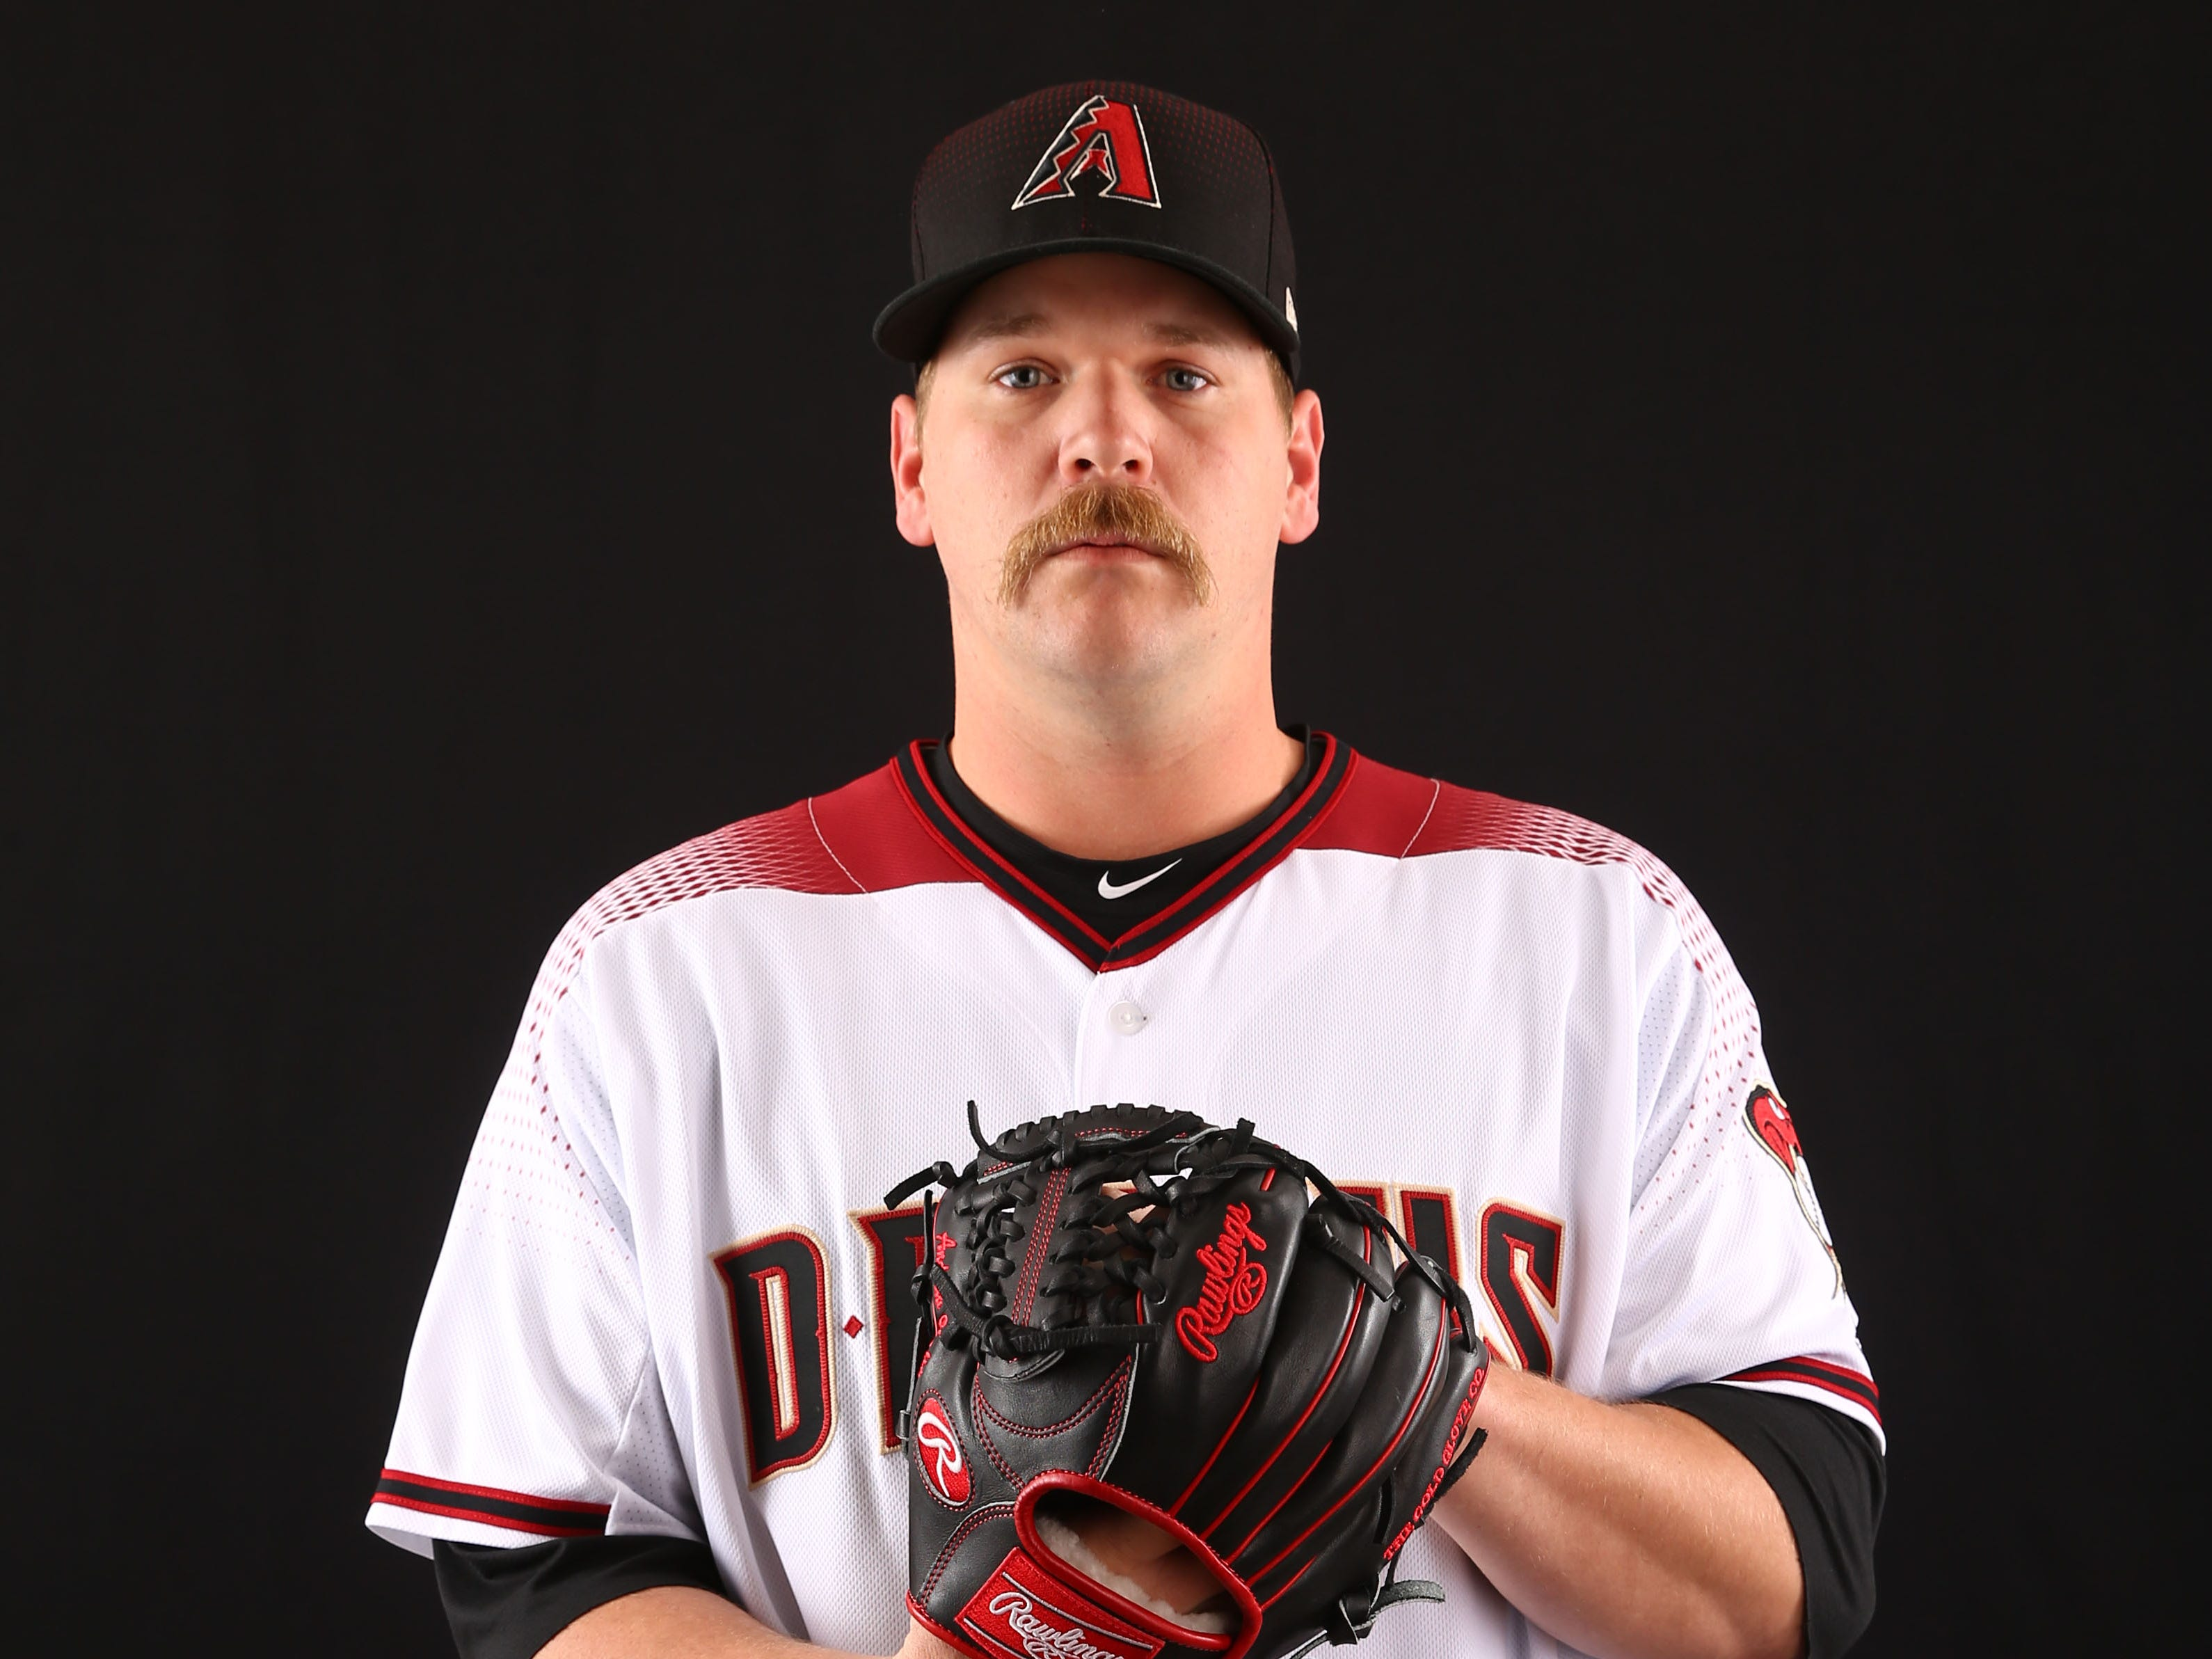 Andrew Chafin of the Arizona Diamondbacks poses for a photo during the annual Spring Training Photo Day on Feb. 20 at Salt River Fields in Scottsdale, Ariz.